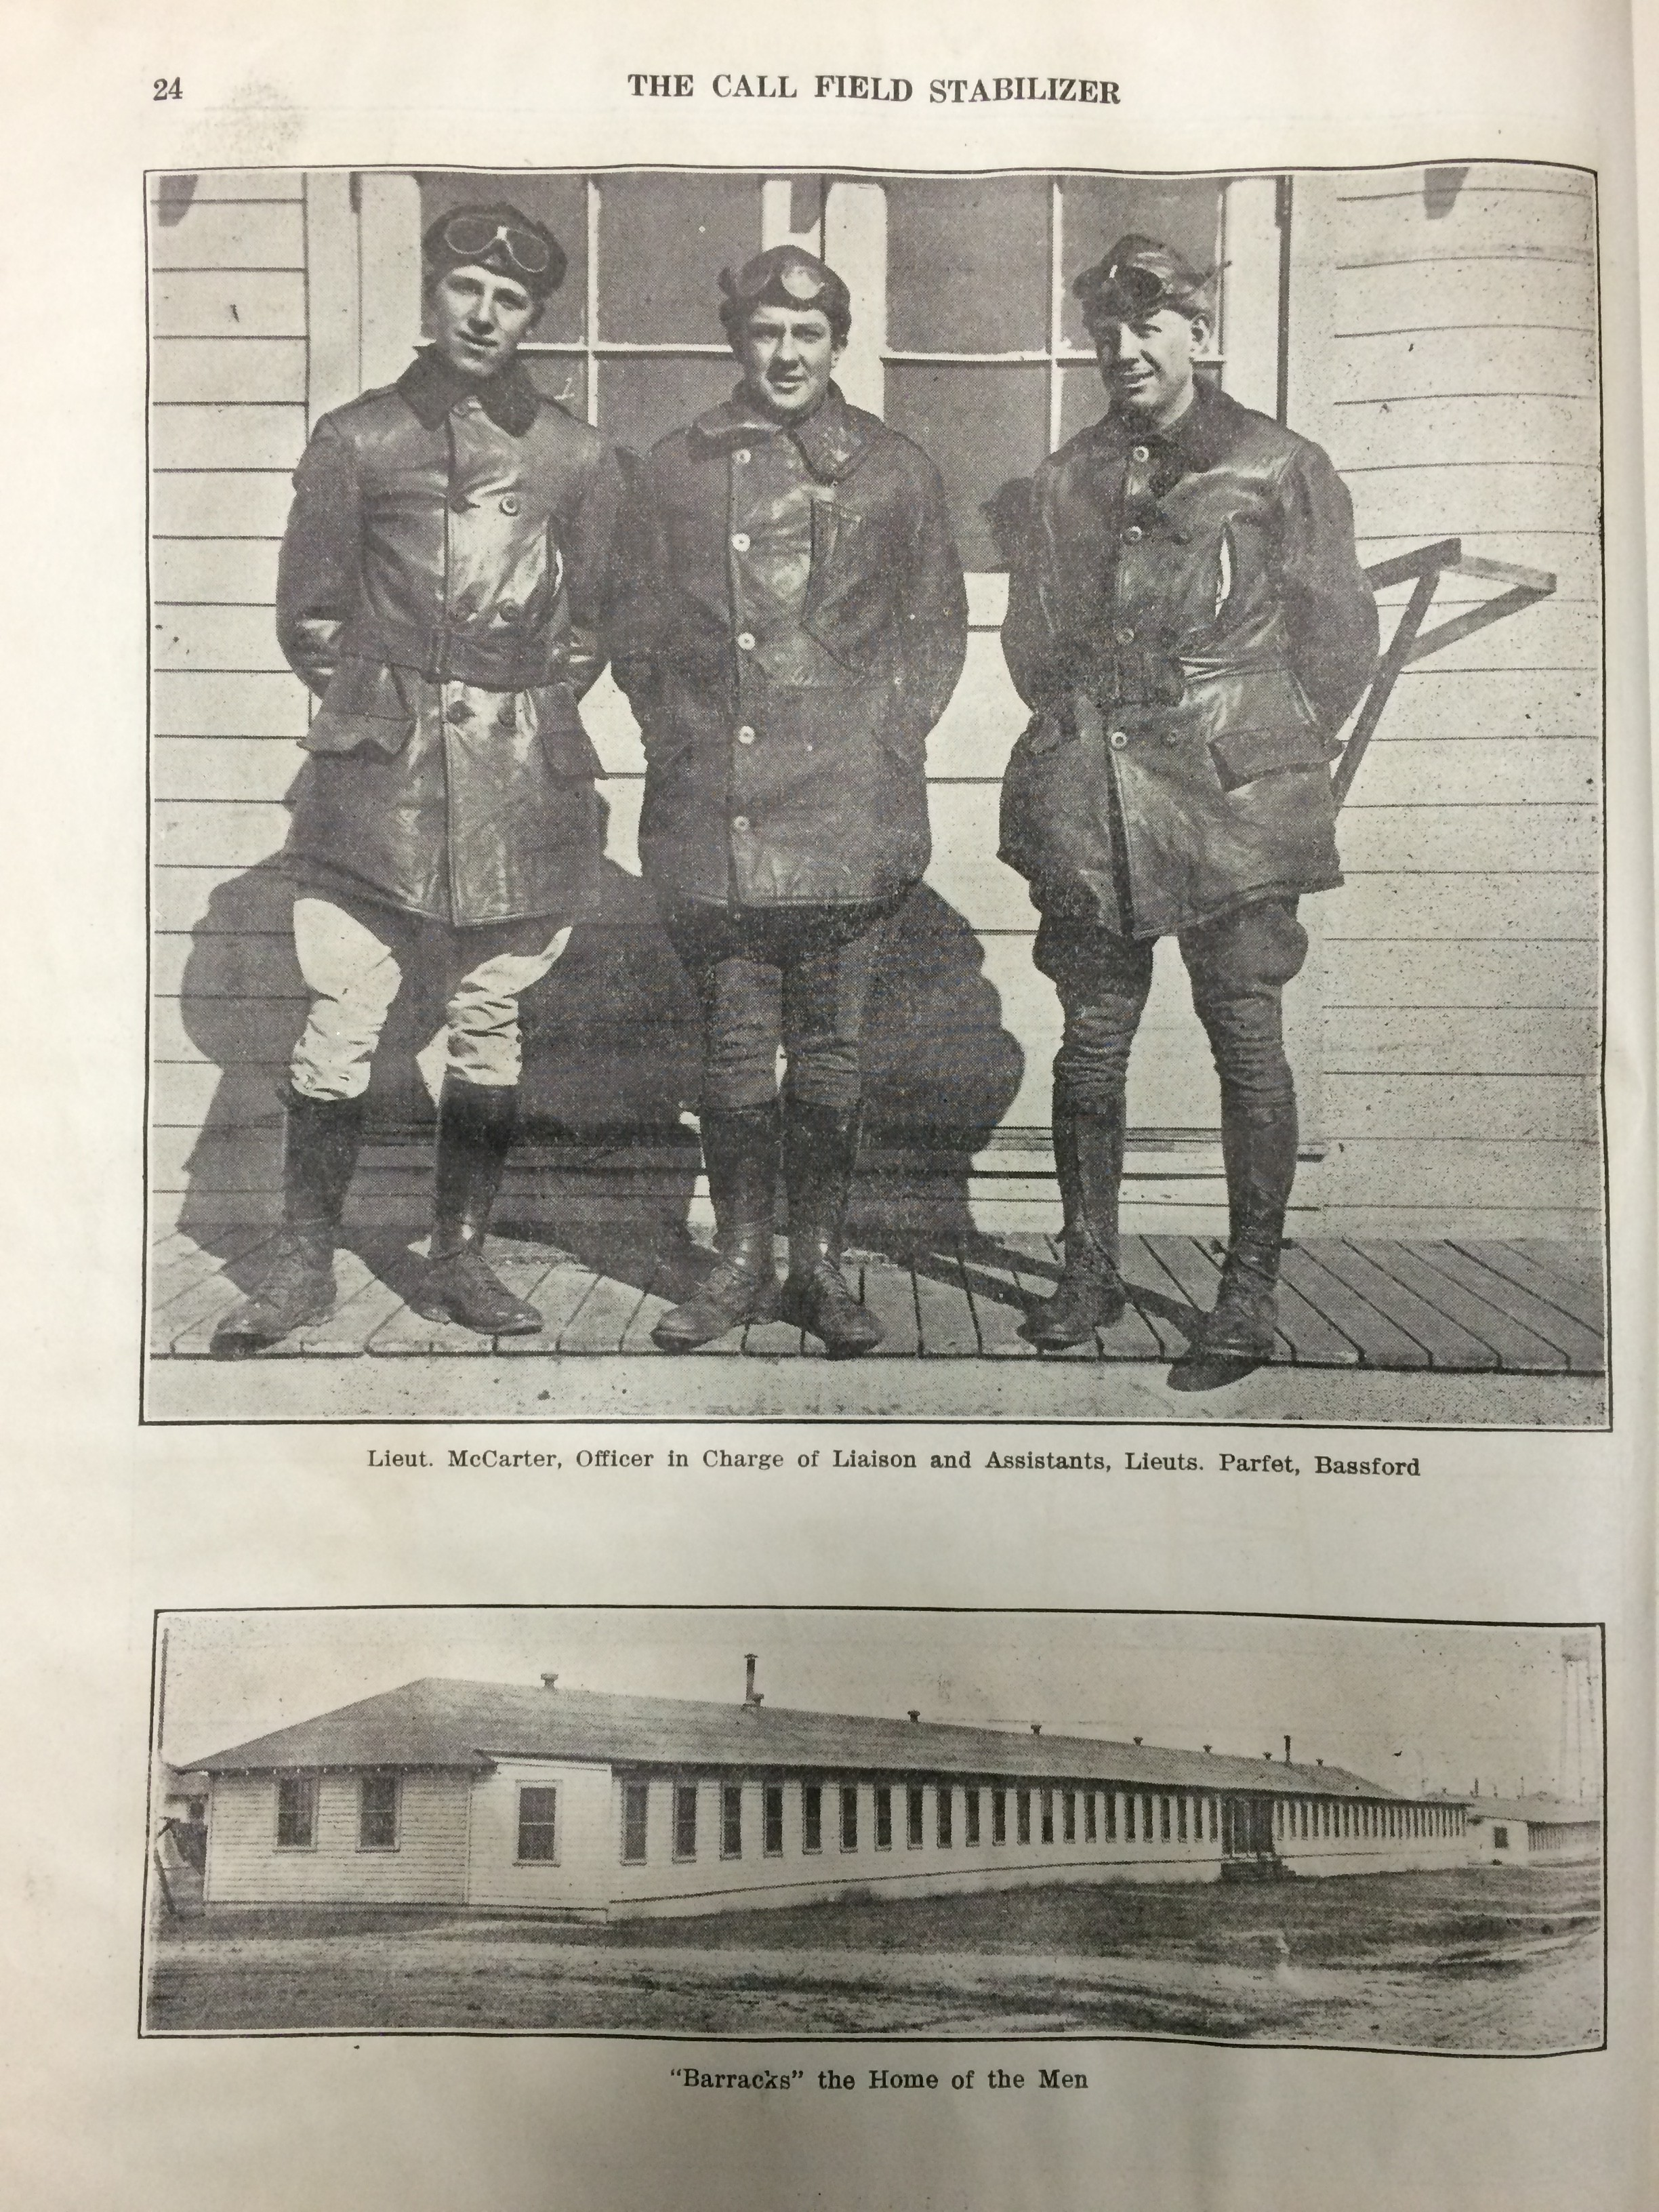 Image 24 December 15, 1918 Call Field Stabilizer